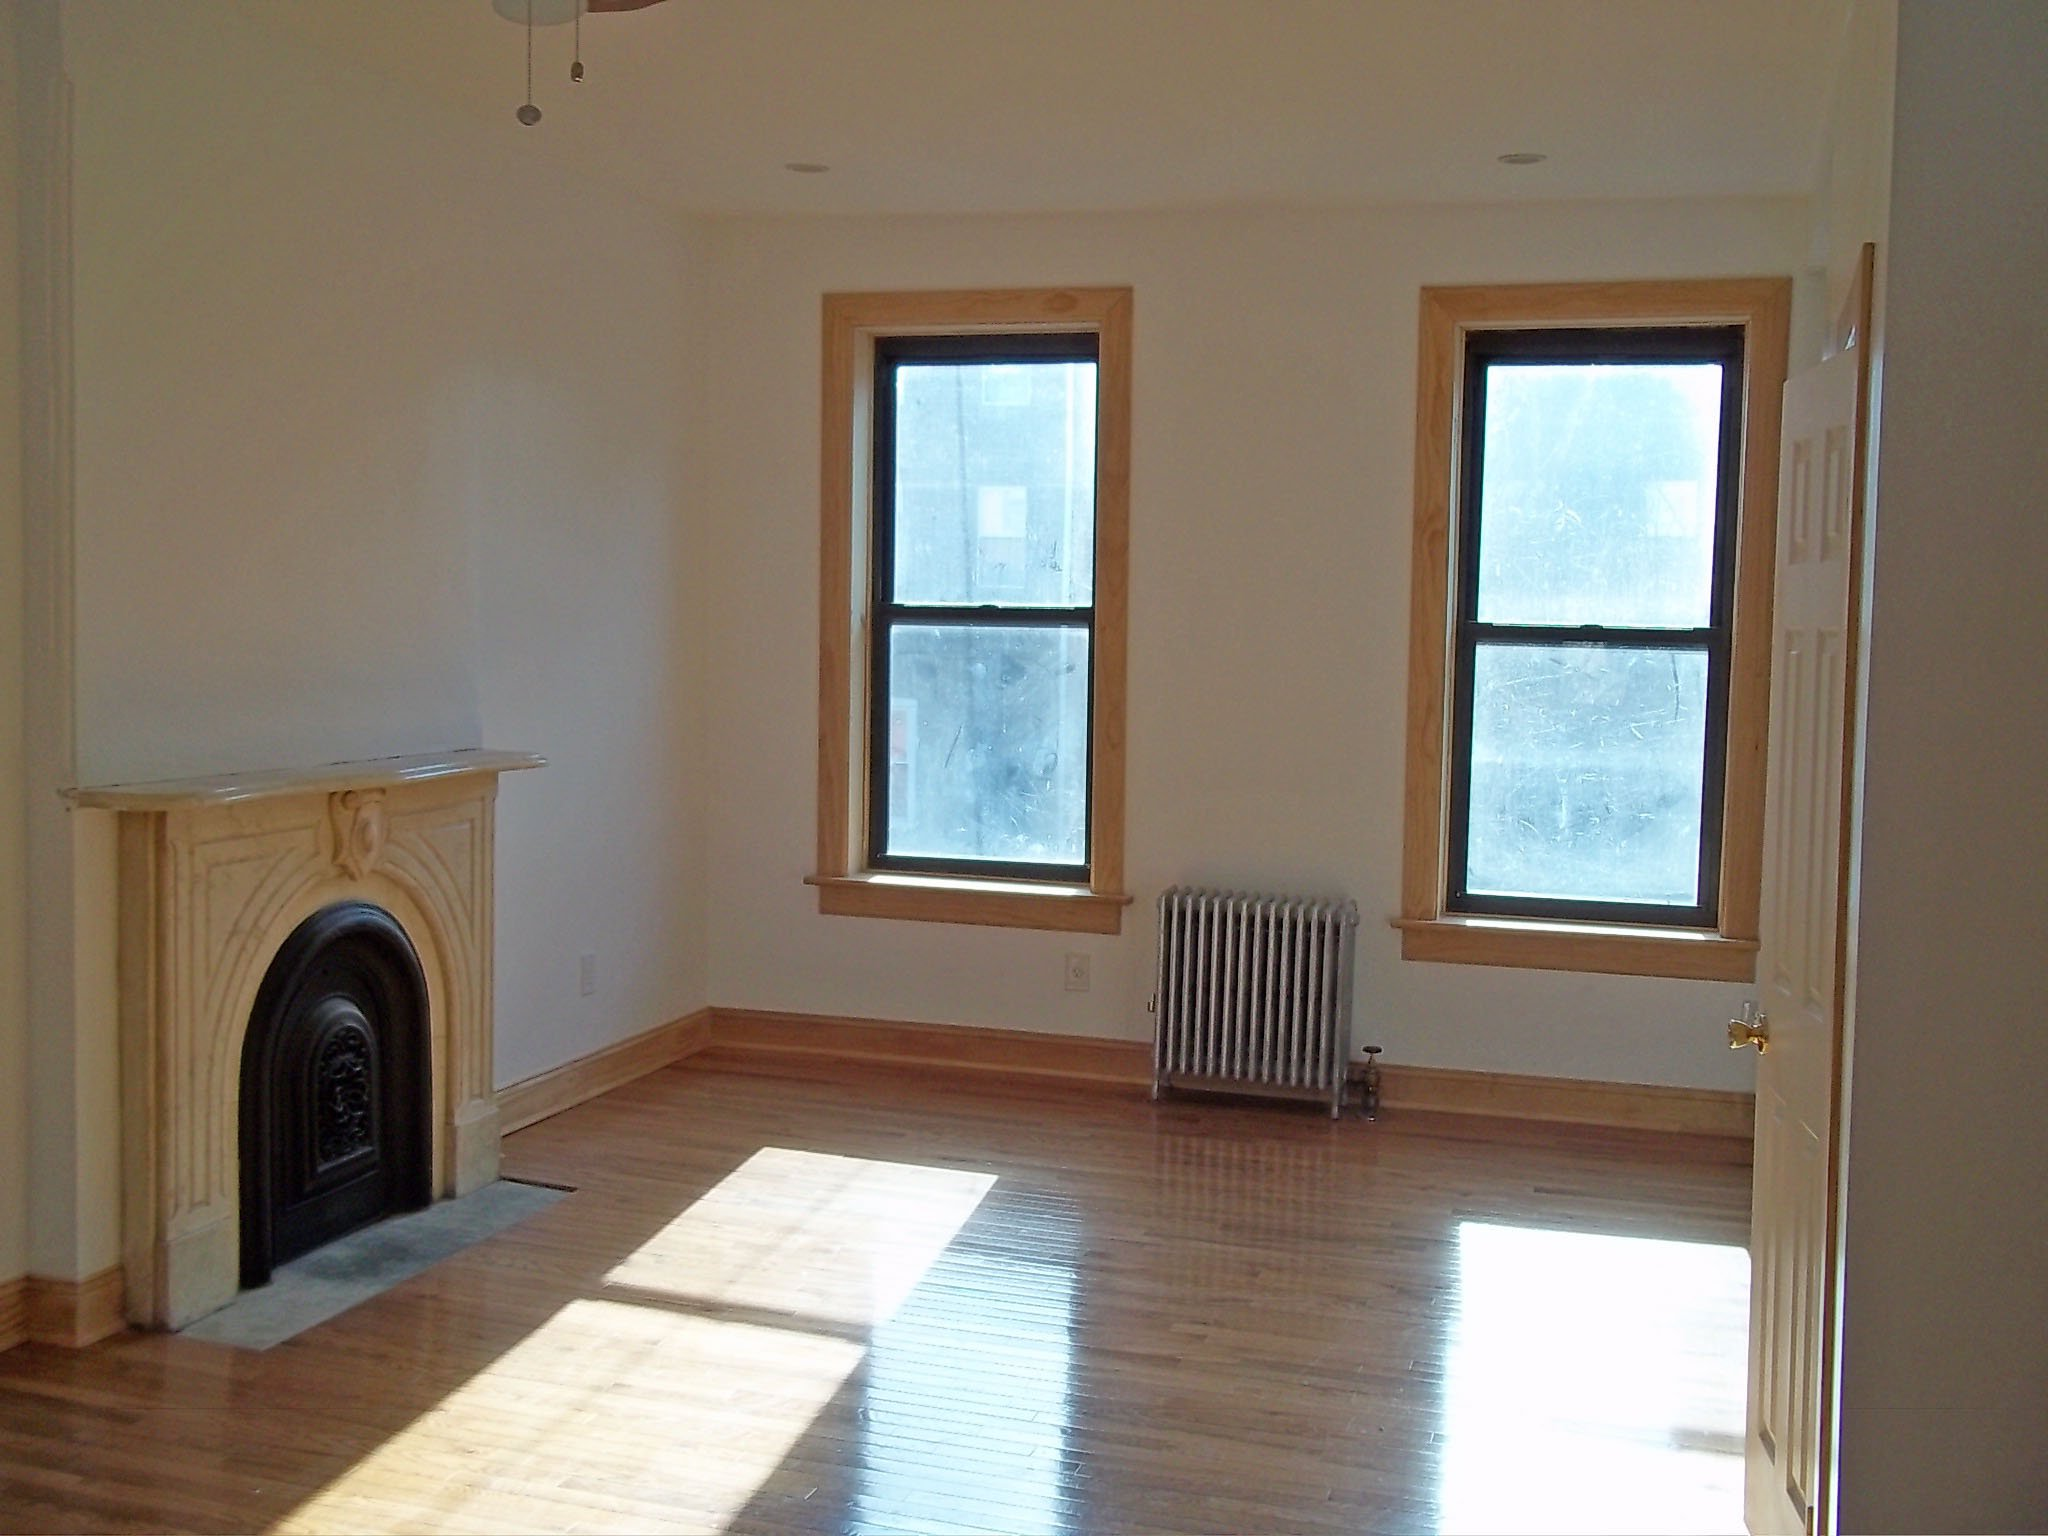 One Bedroom Apartment In The Bronx Bedford Stuyvesant 1 Bedroom Apartment For Rent Brooklyn